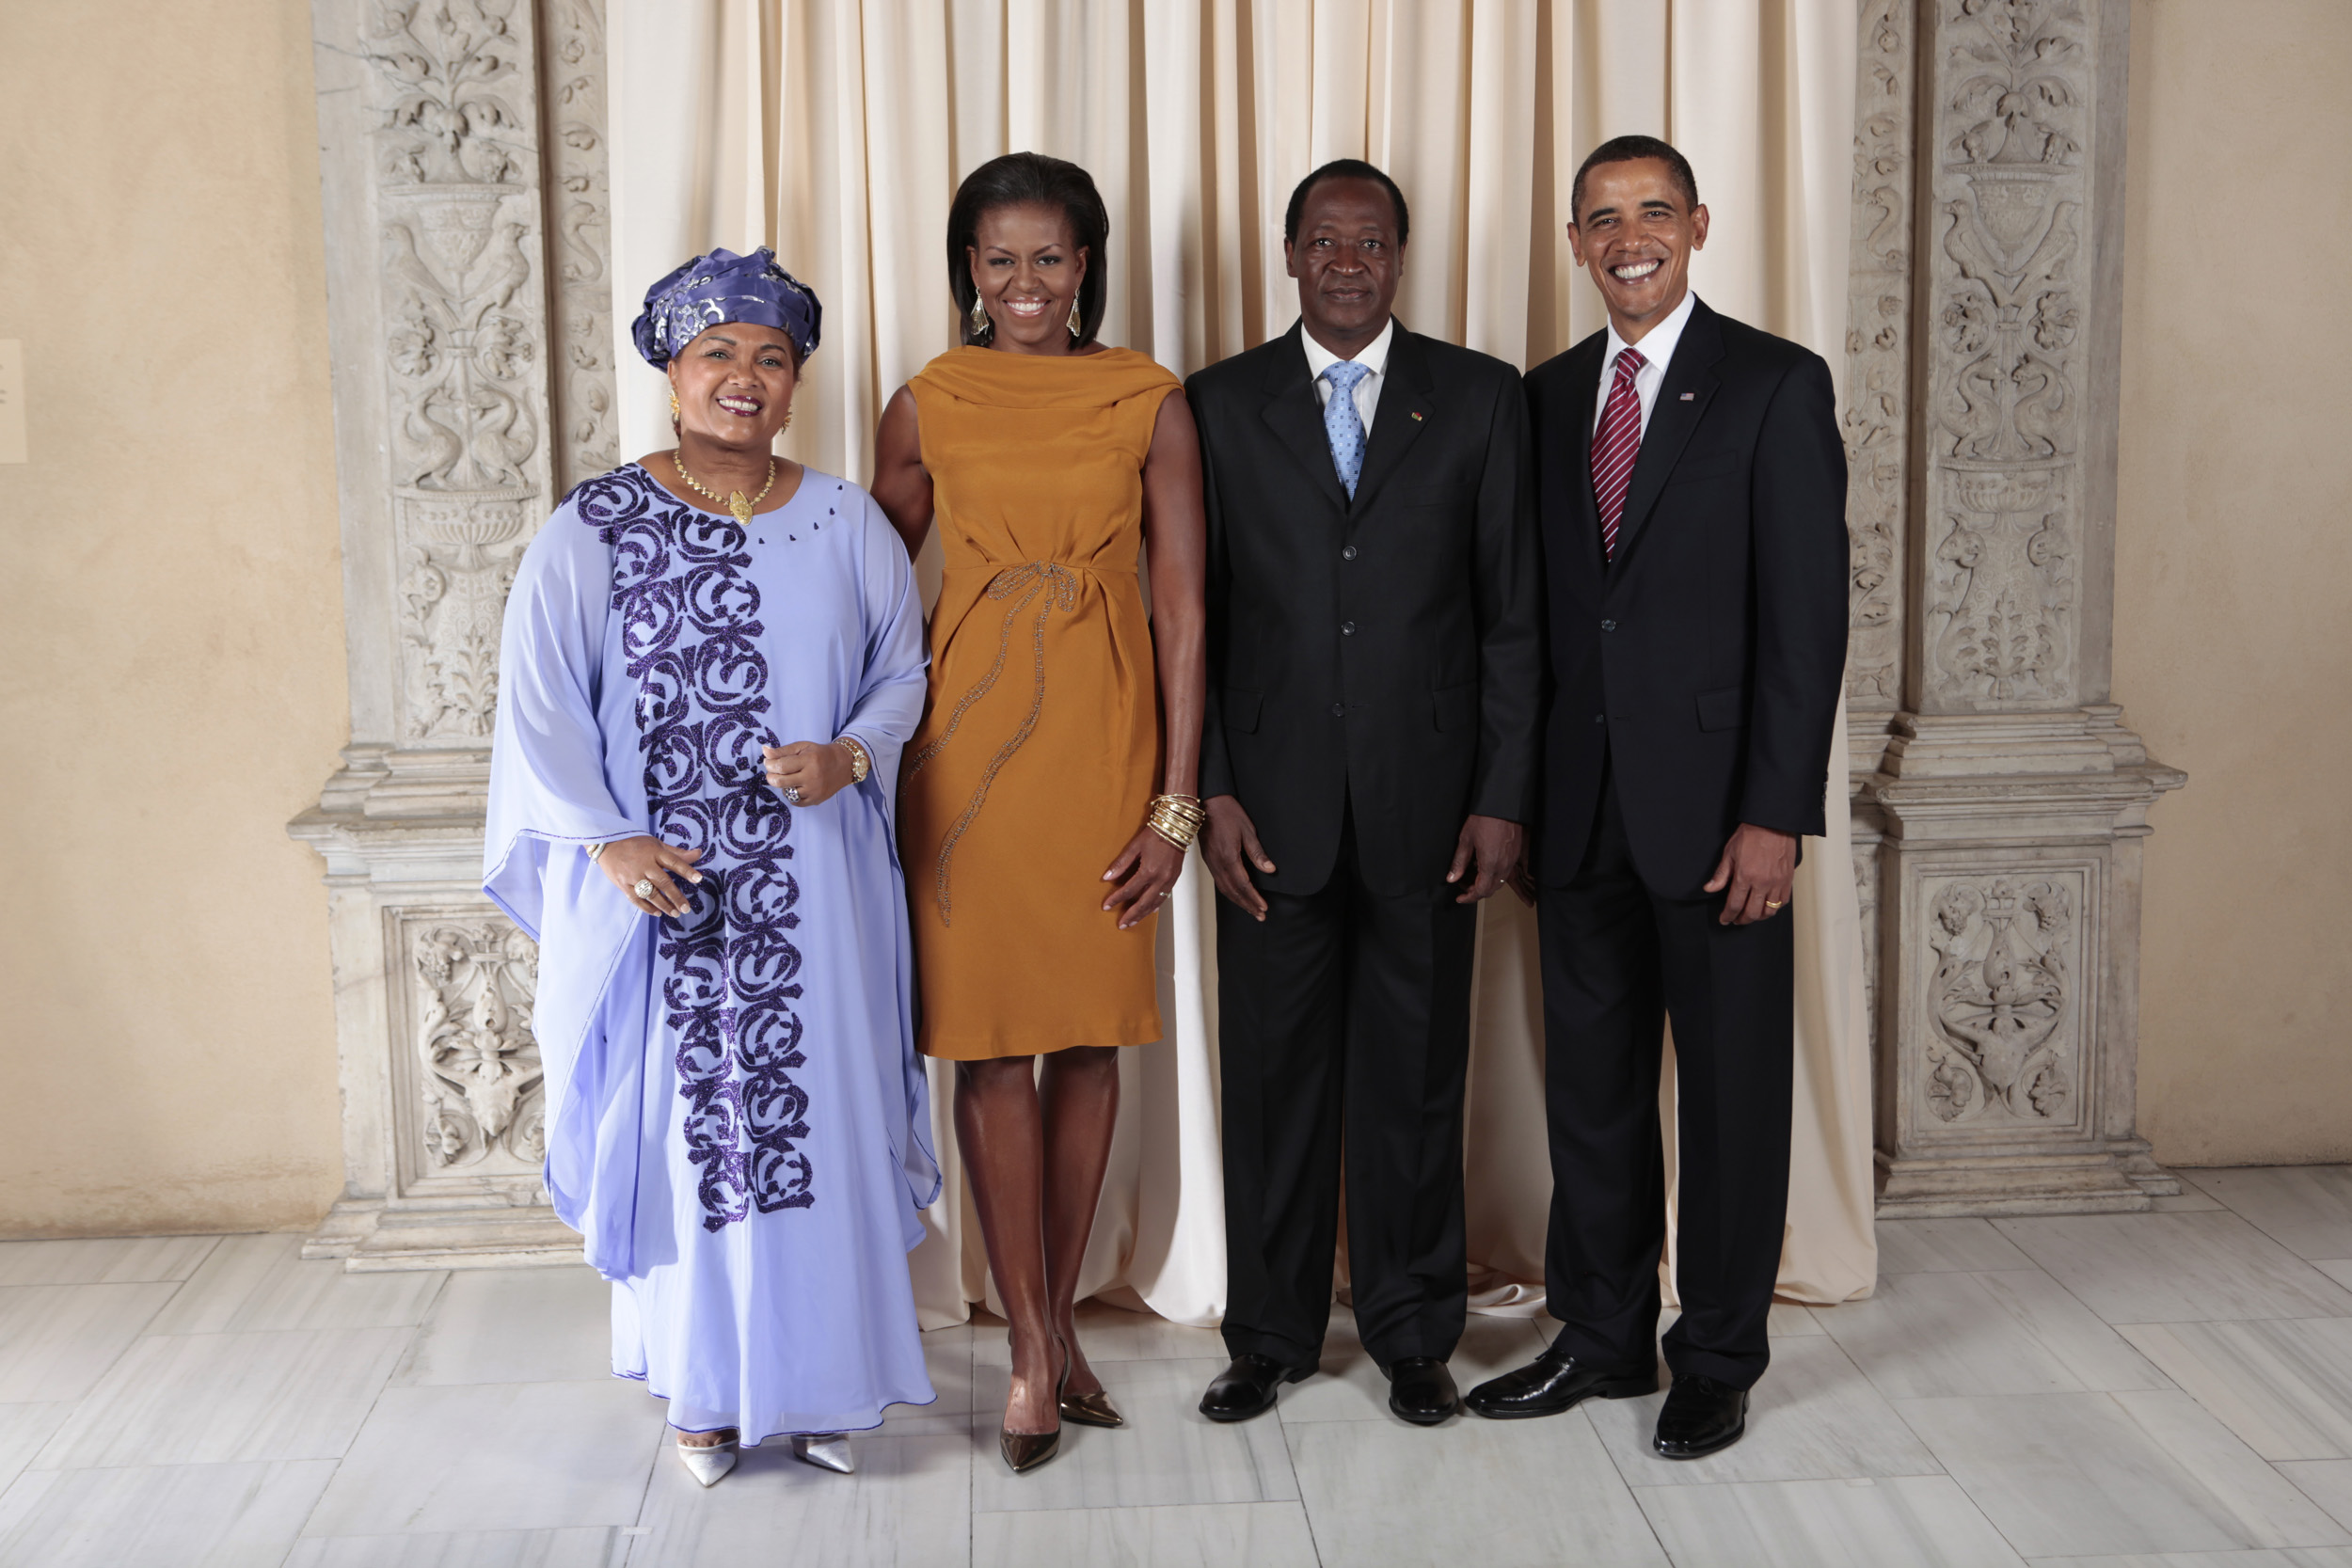 http://upload.wikimedia.org/wikipedia/commons/4/4e/Blaise_Compaore_with_Obamas.jpg